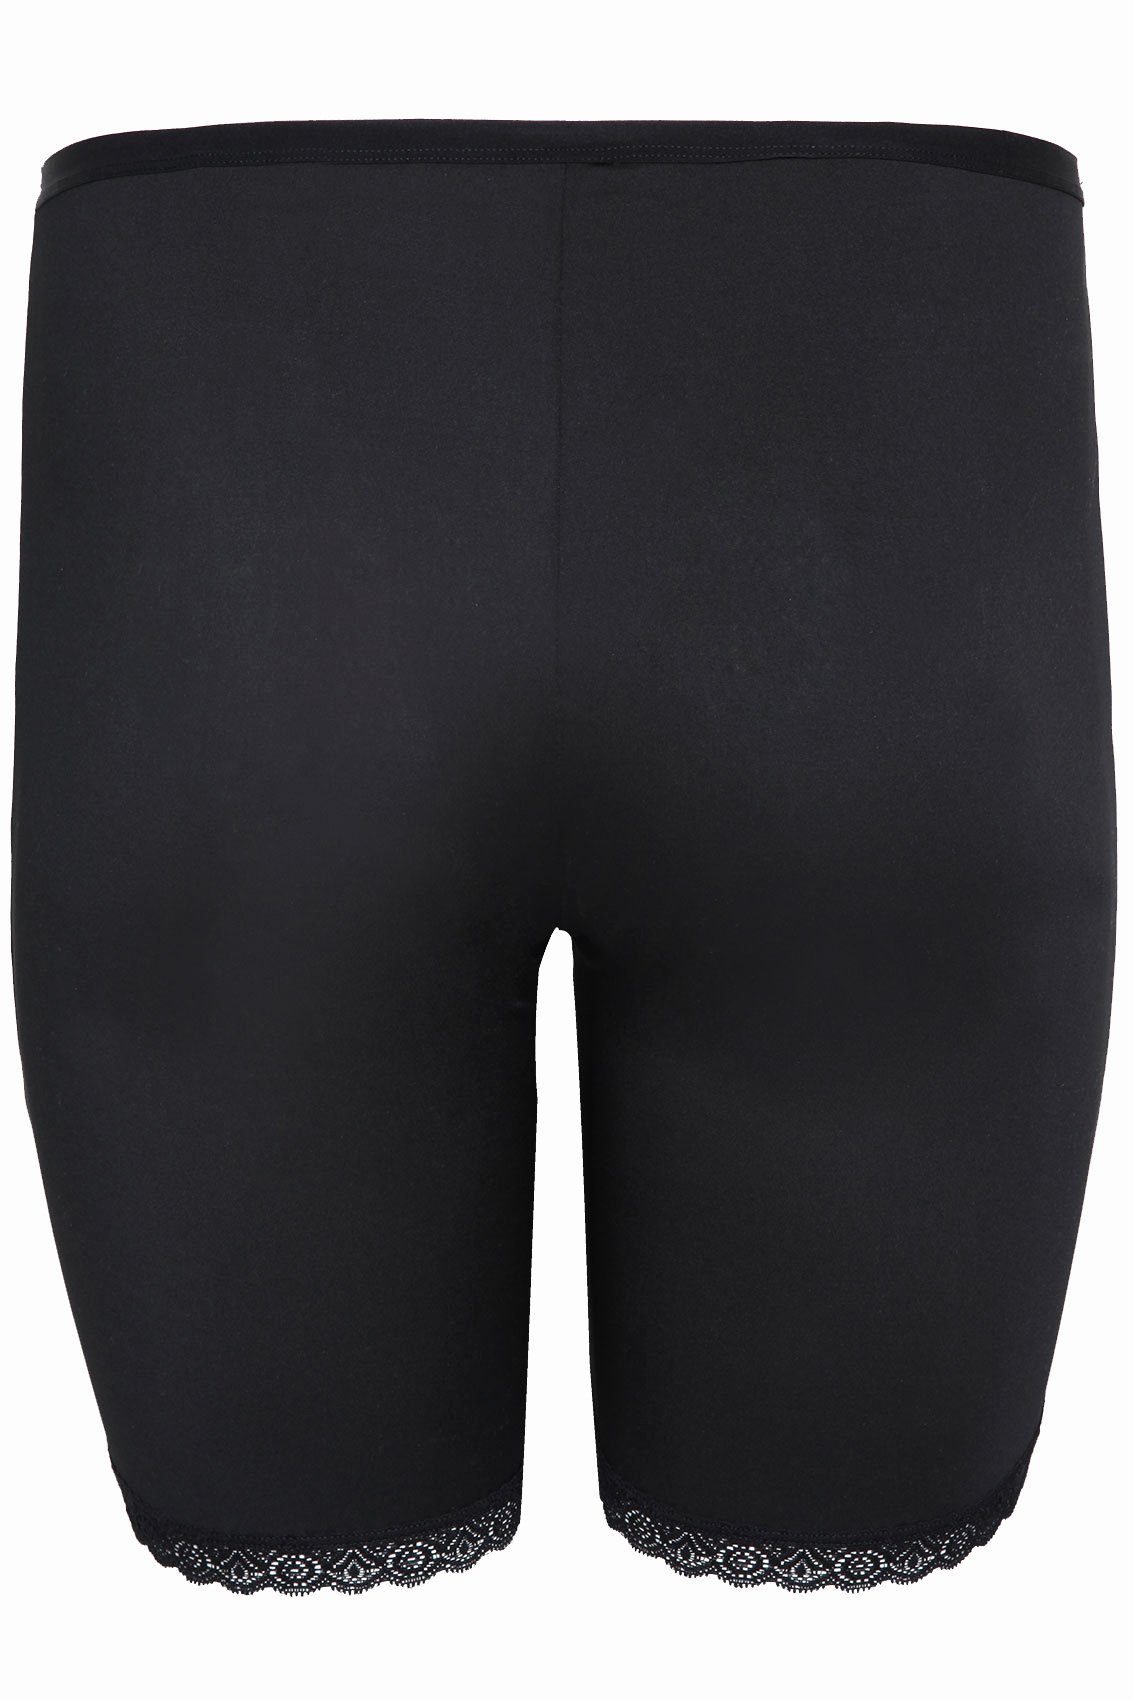 No Return Policy Template Elegant Black Thigh Smoother Brief with Lace Detail Hem Plus Size